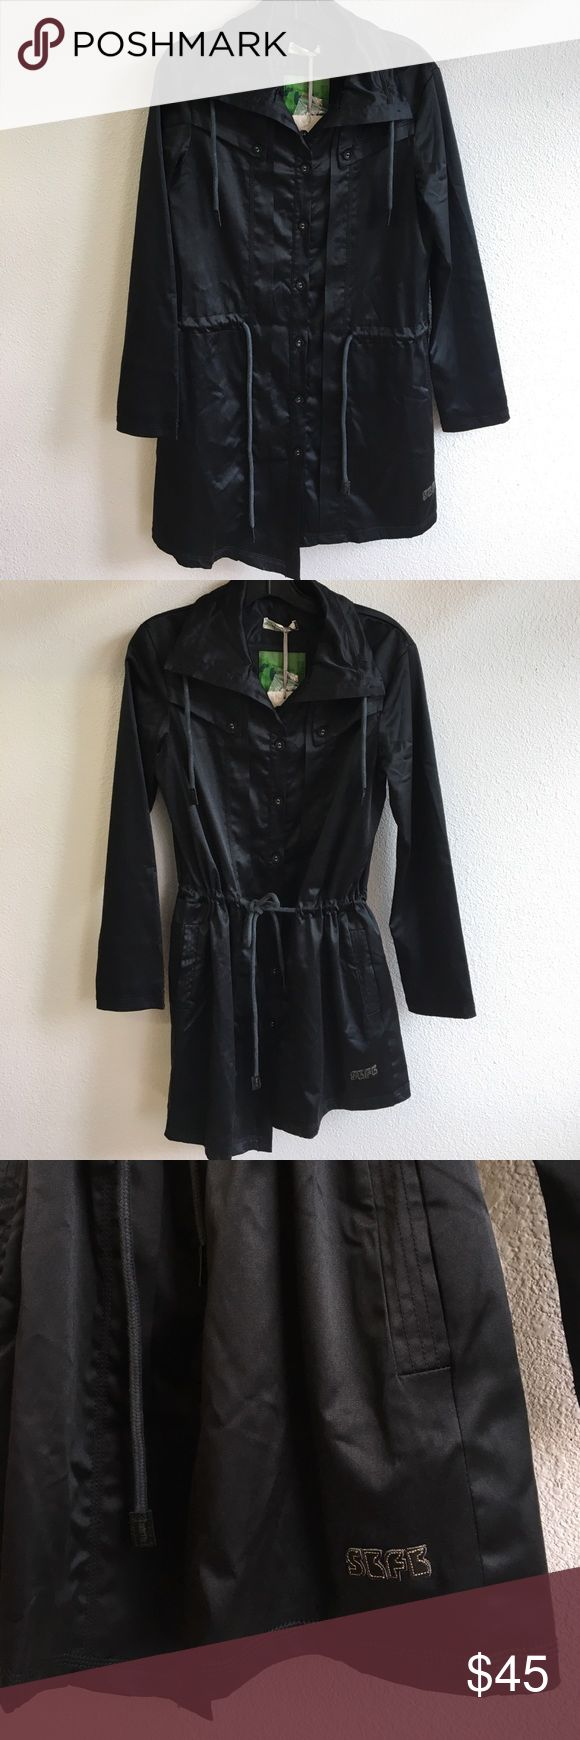 NWT small Skunk Funk black coat NWT size small Skunk Funk black trench coat, mid waist draw string, abstract cut at the bottom 50% polyester 45% cotton 5% elastin Skunk Funk Jackets & Coats Trench Coats